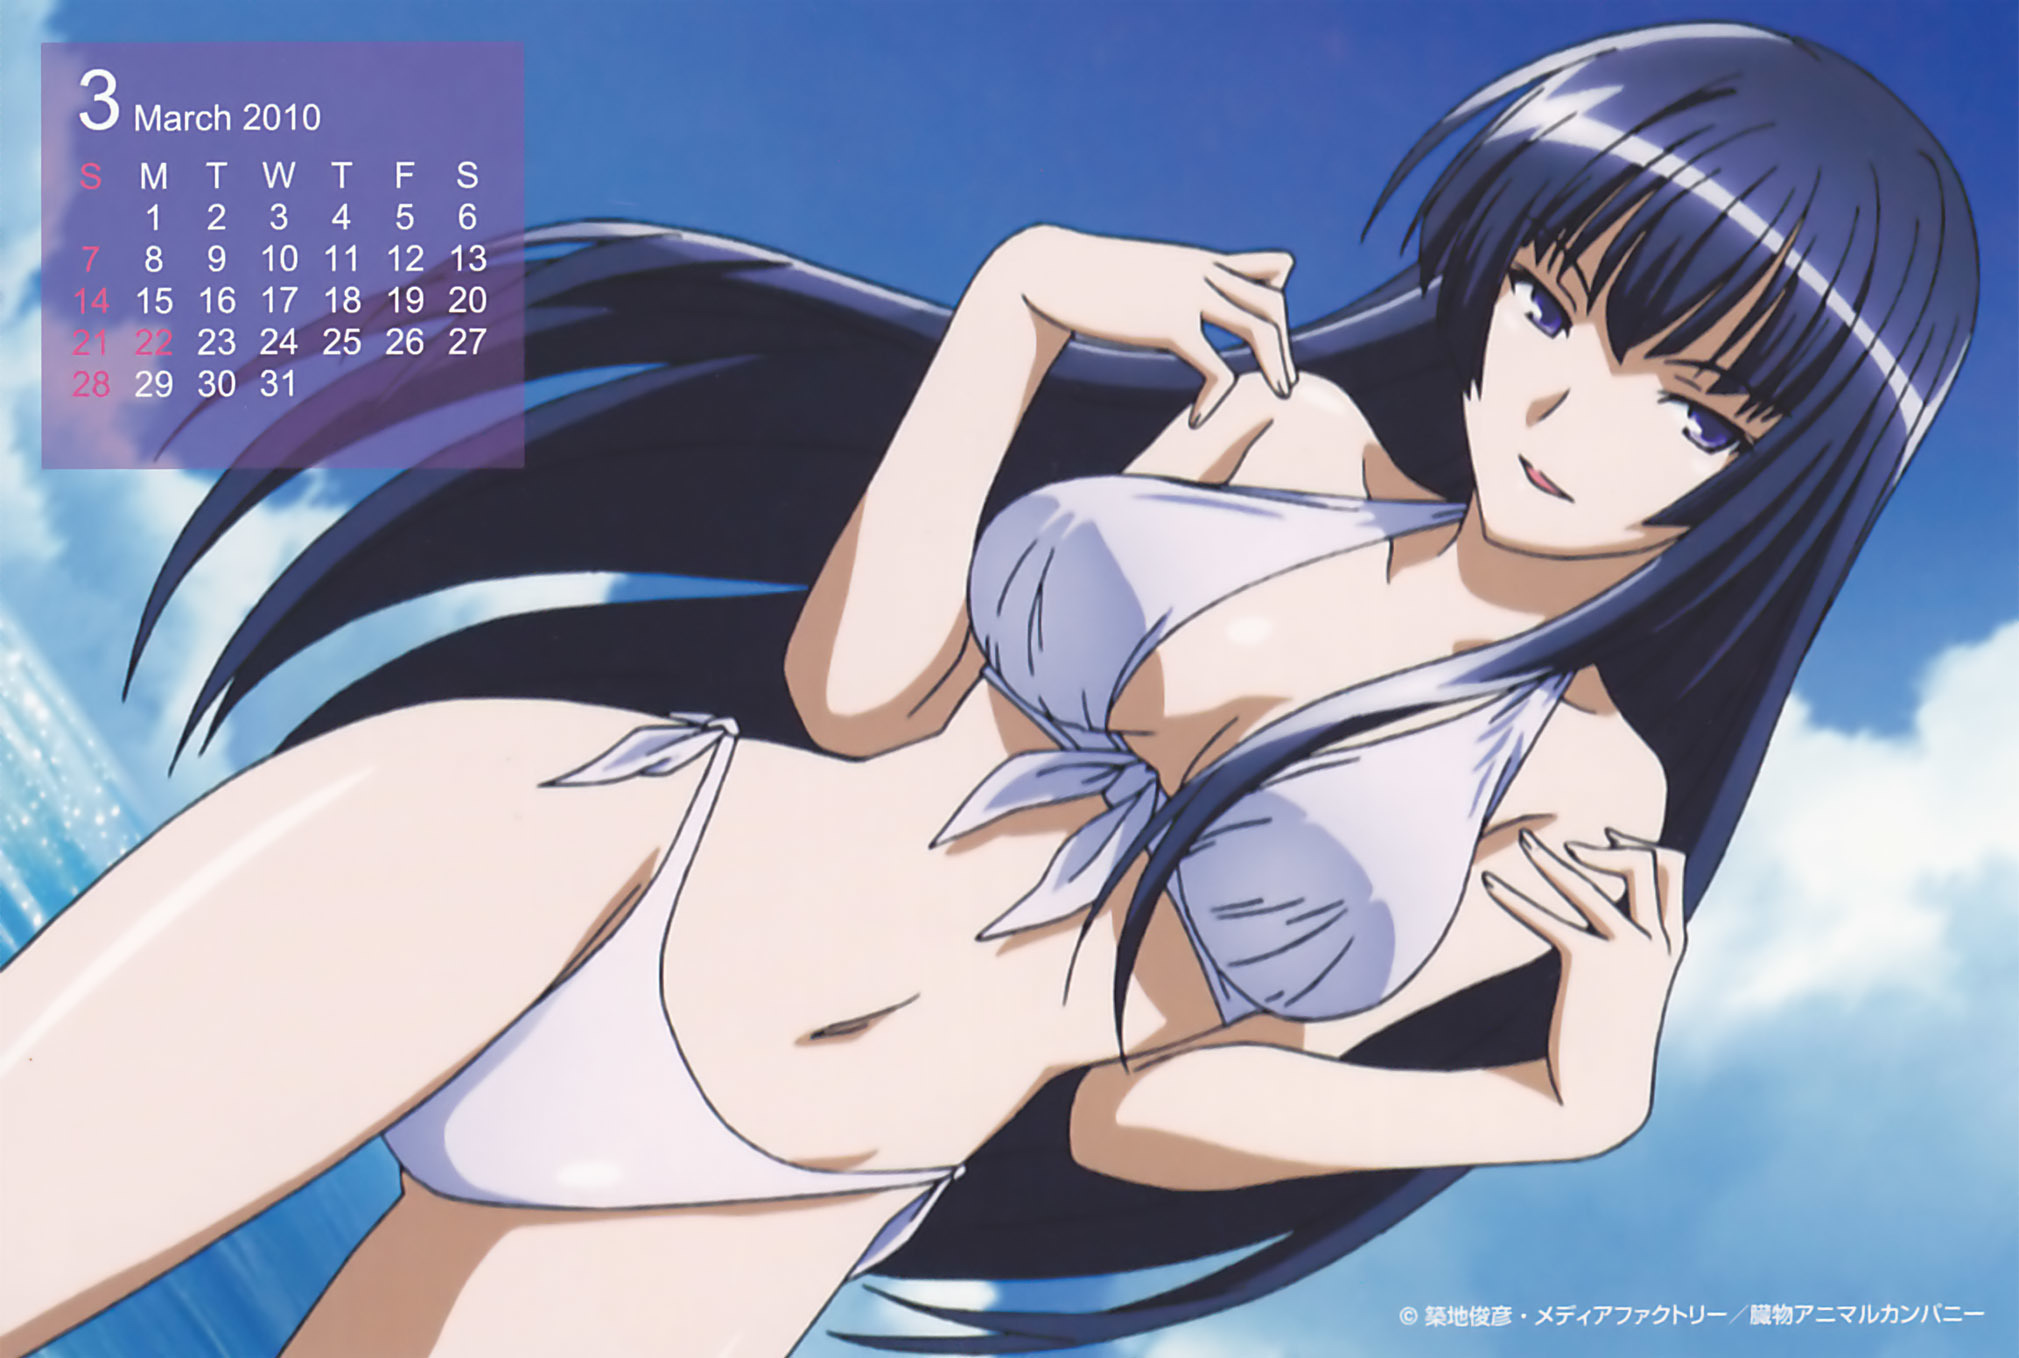 kampfer Calendar Sangou Shizuku HD Wallpaper